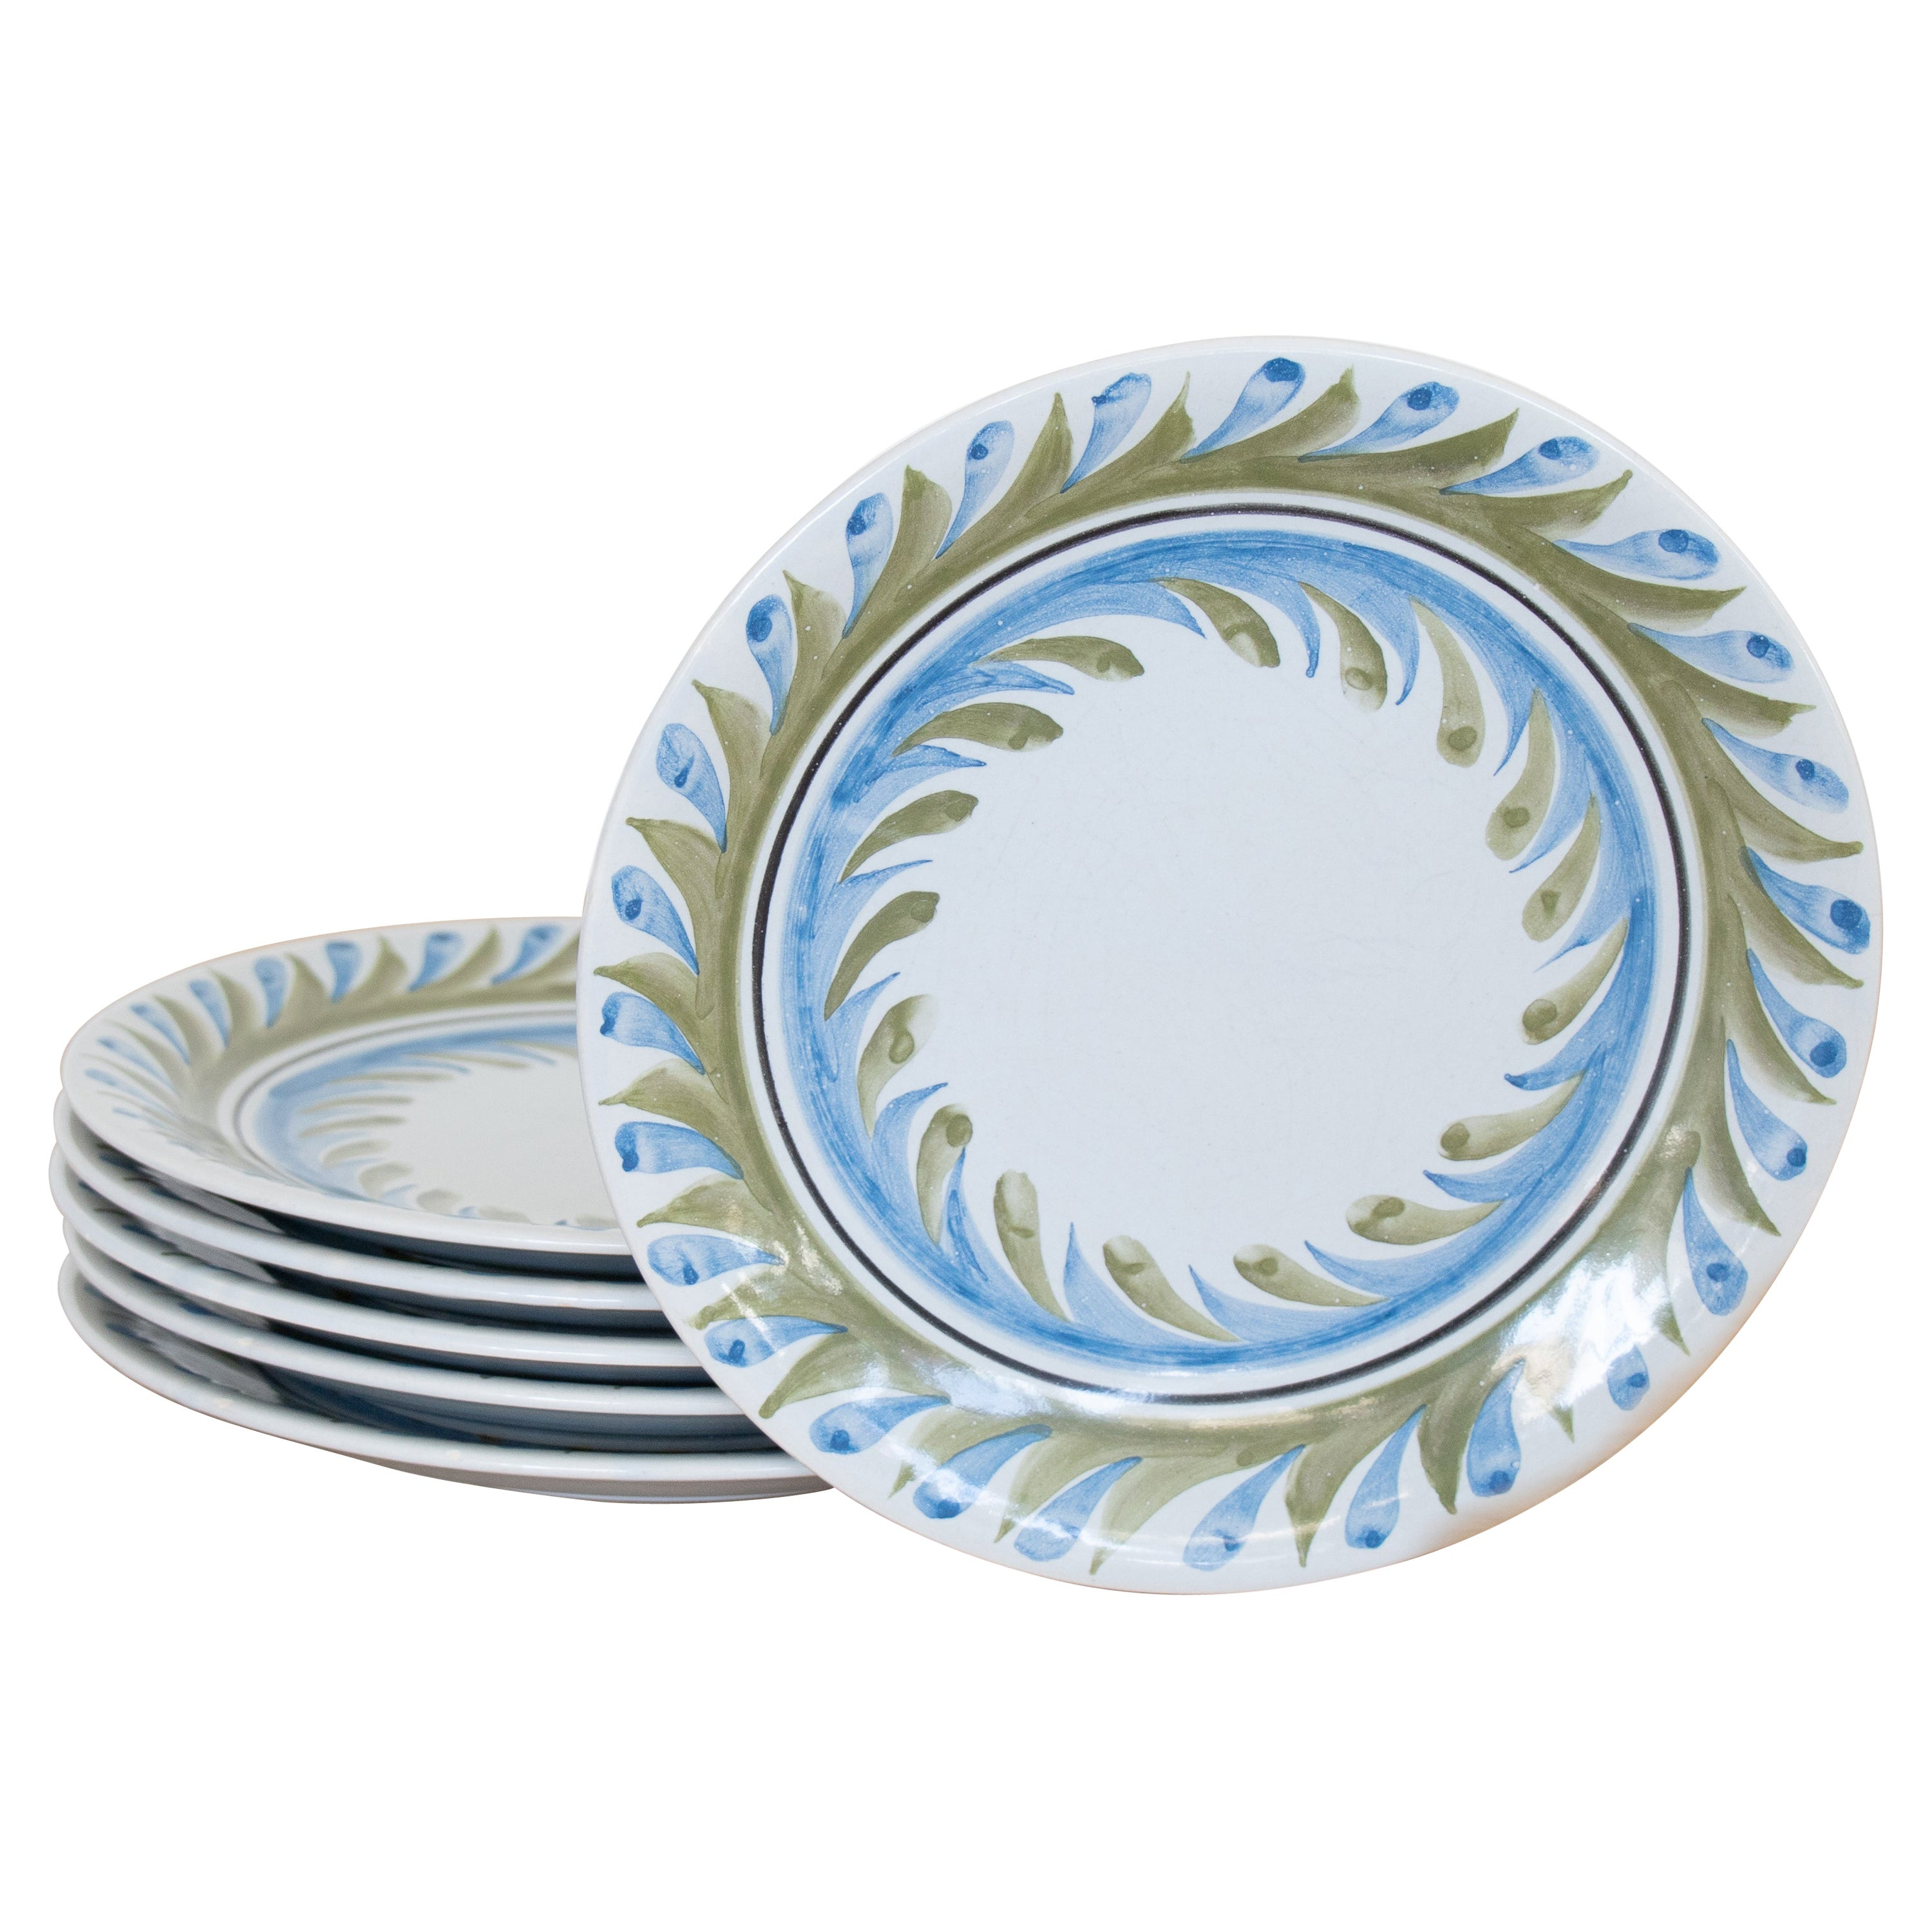 Set of 6 Roger Capron Painted Plates